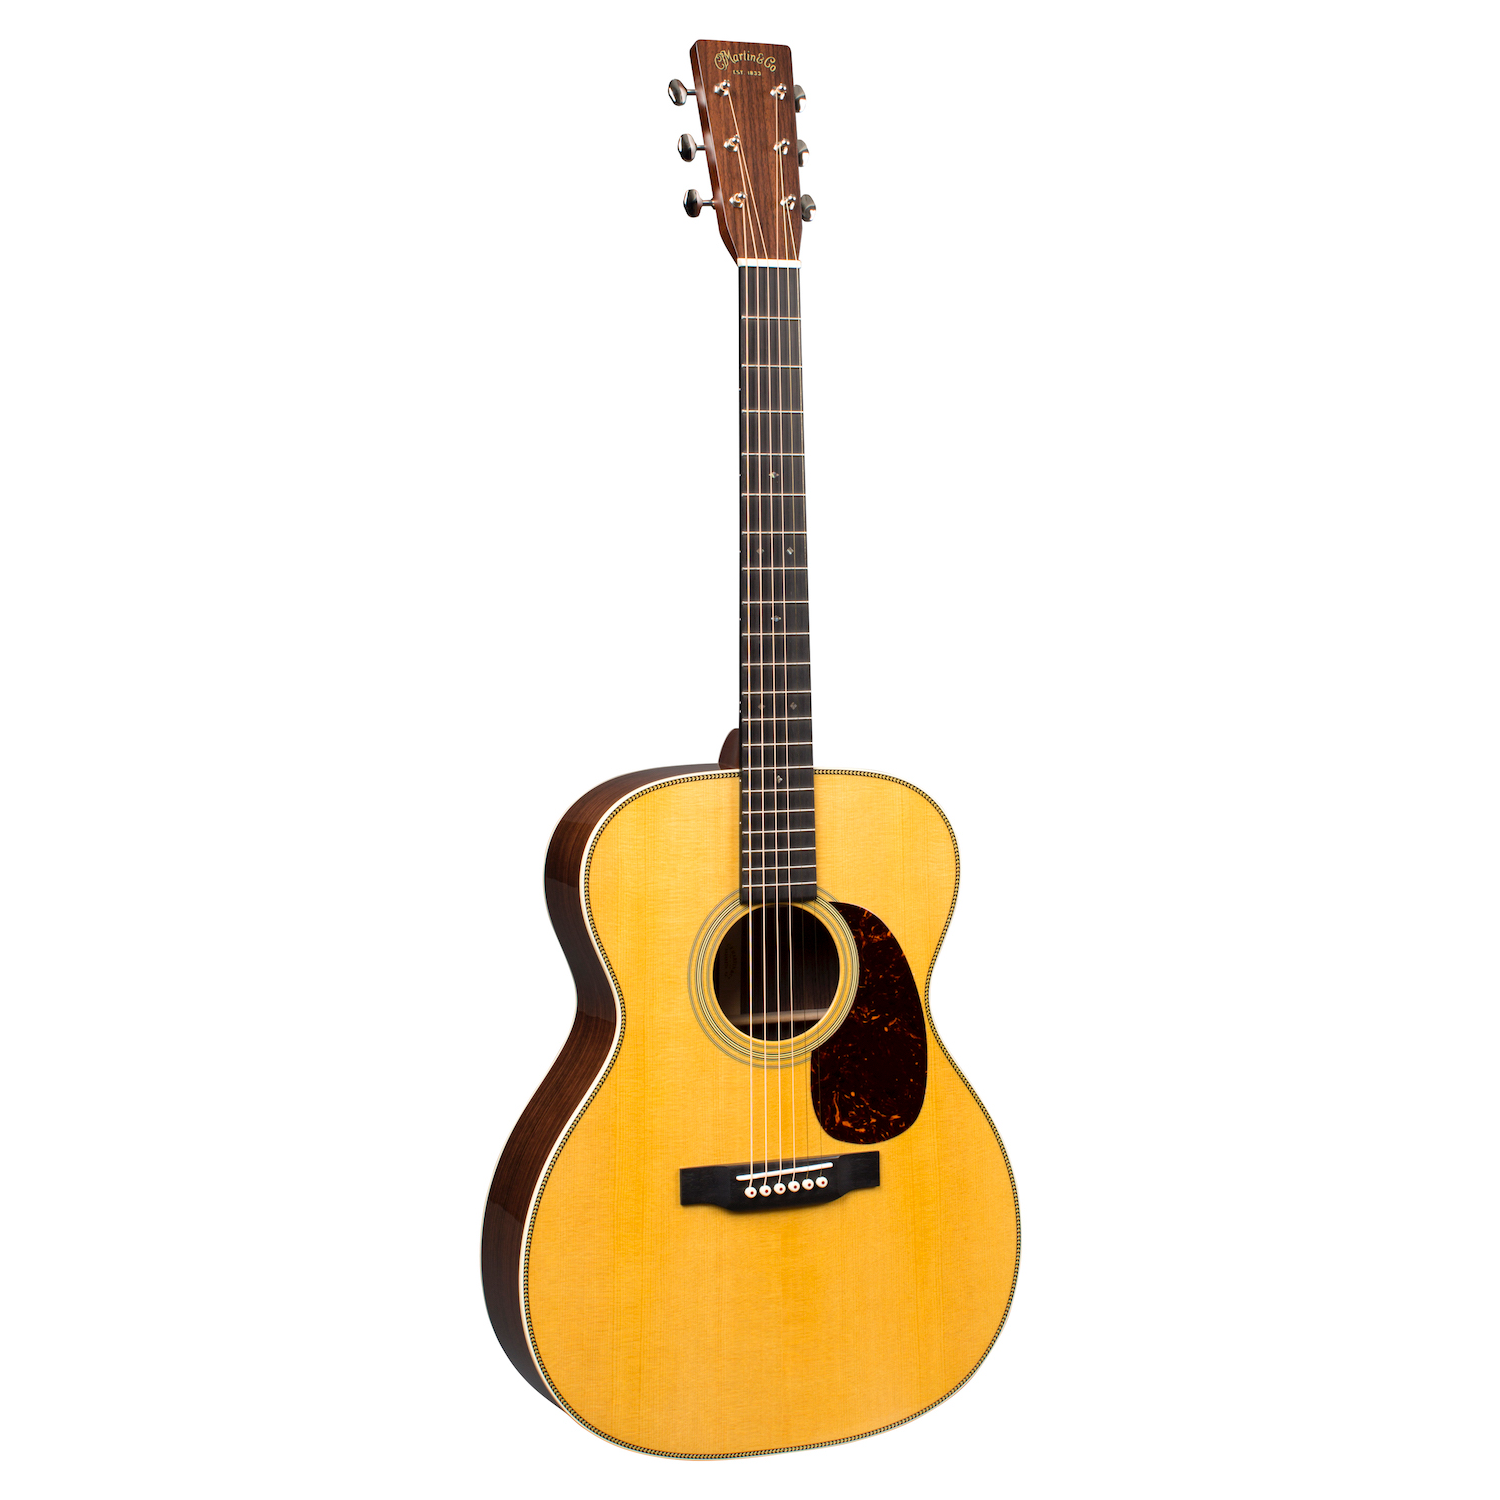 Martin & Co. 00028: Standard Series Auditorium Acoustic Guitar